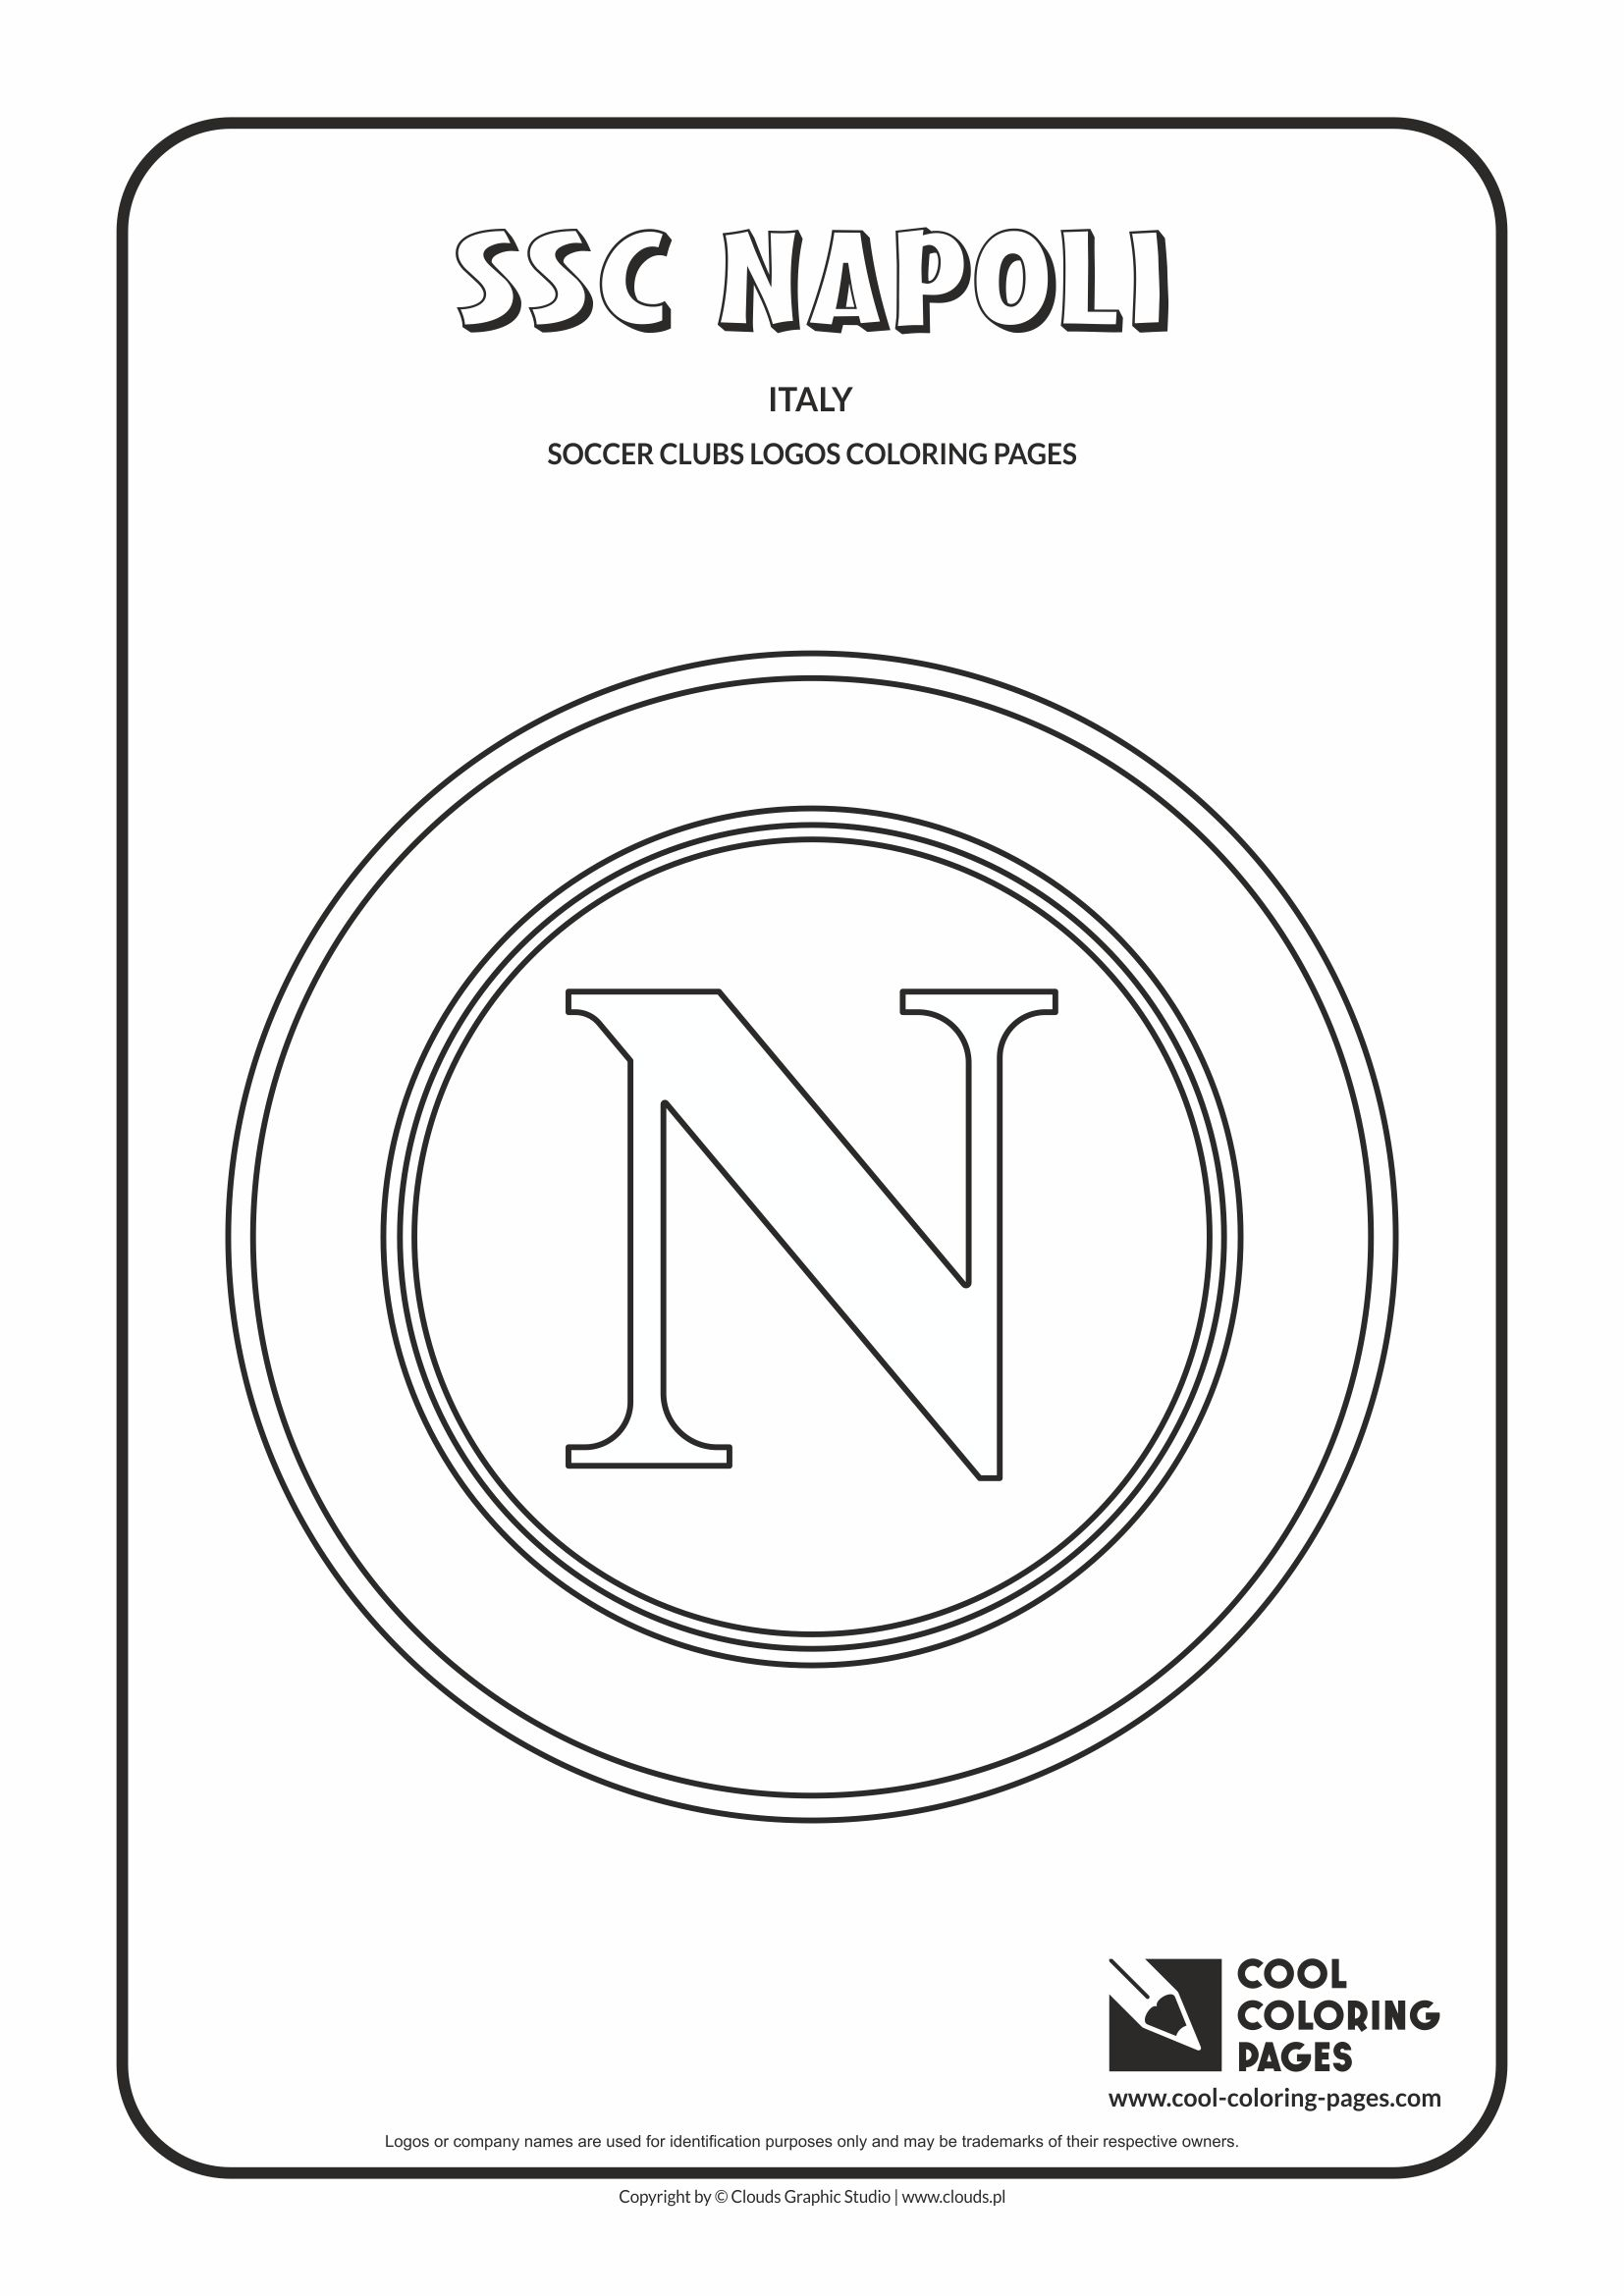 Cool Coloring Pages SSC Napoli